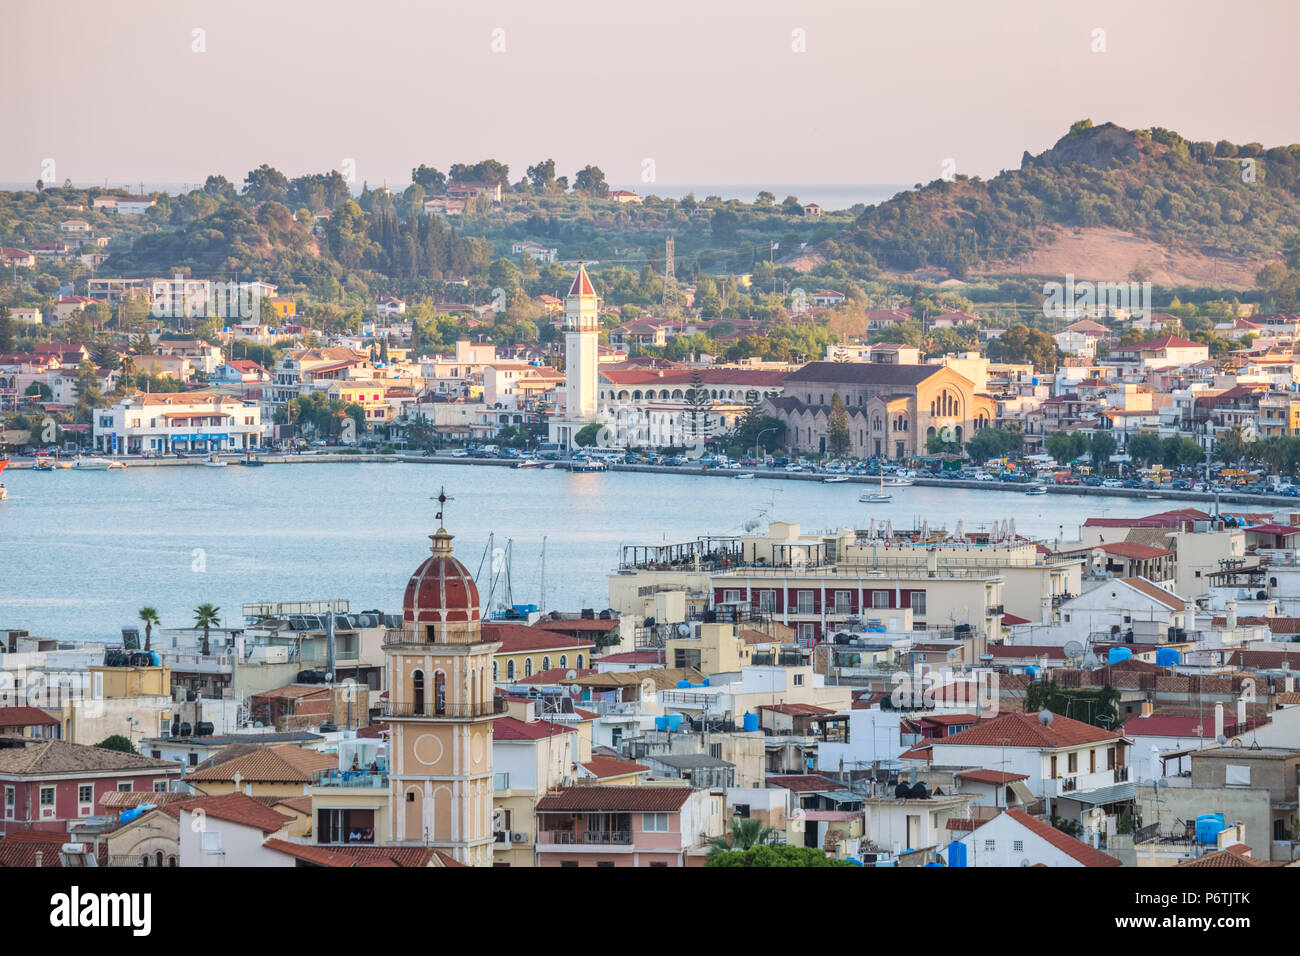 Zakynthos town and harbour at sunset, Zakynthos, Greece - Stock Image